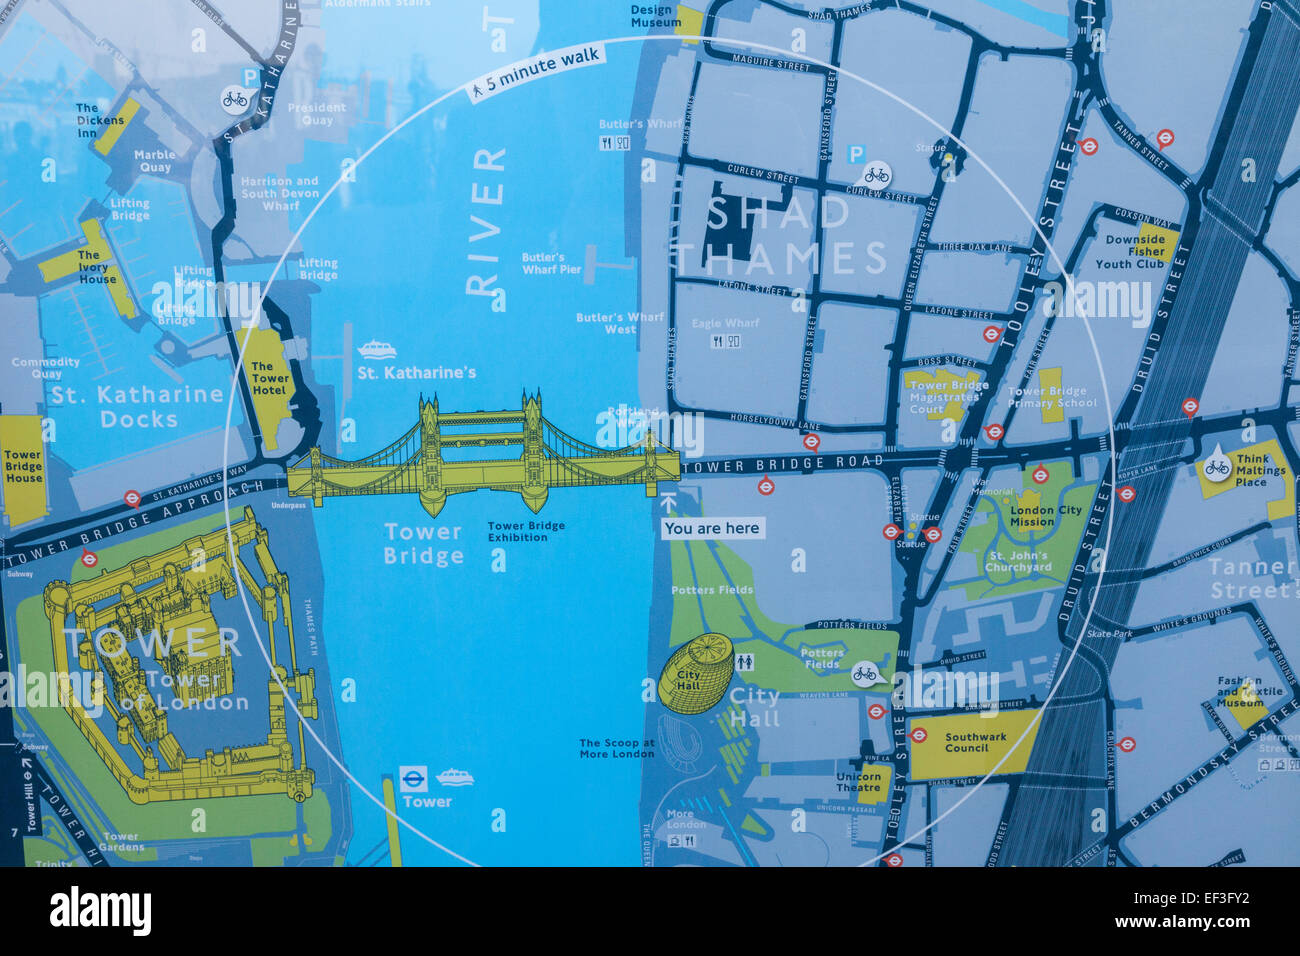 Map Of London England And Surrounding Area.England London Street Map Of Tower Bridge And Surrounding Area